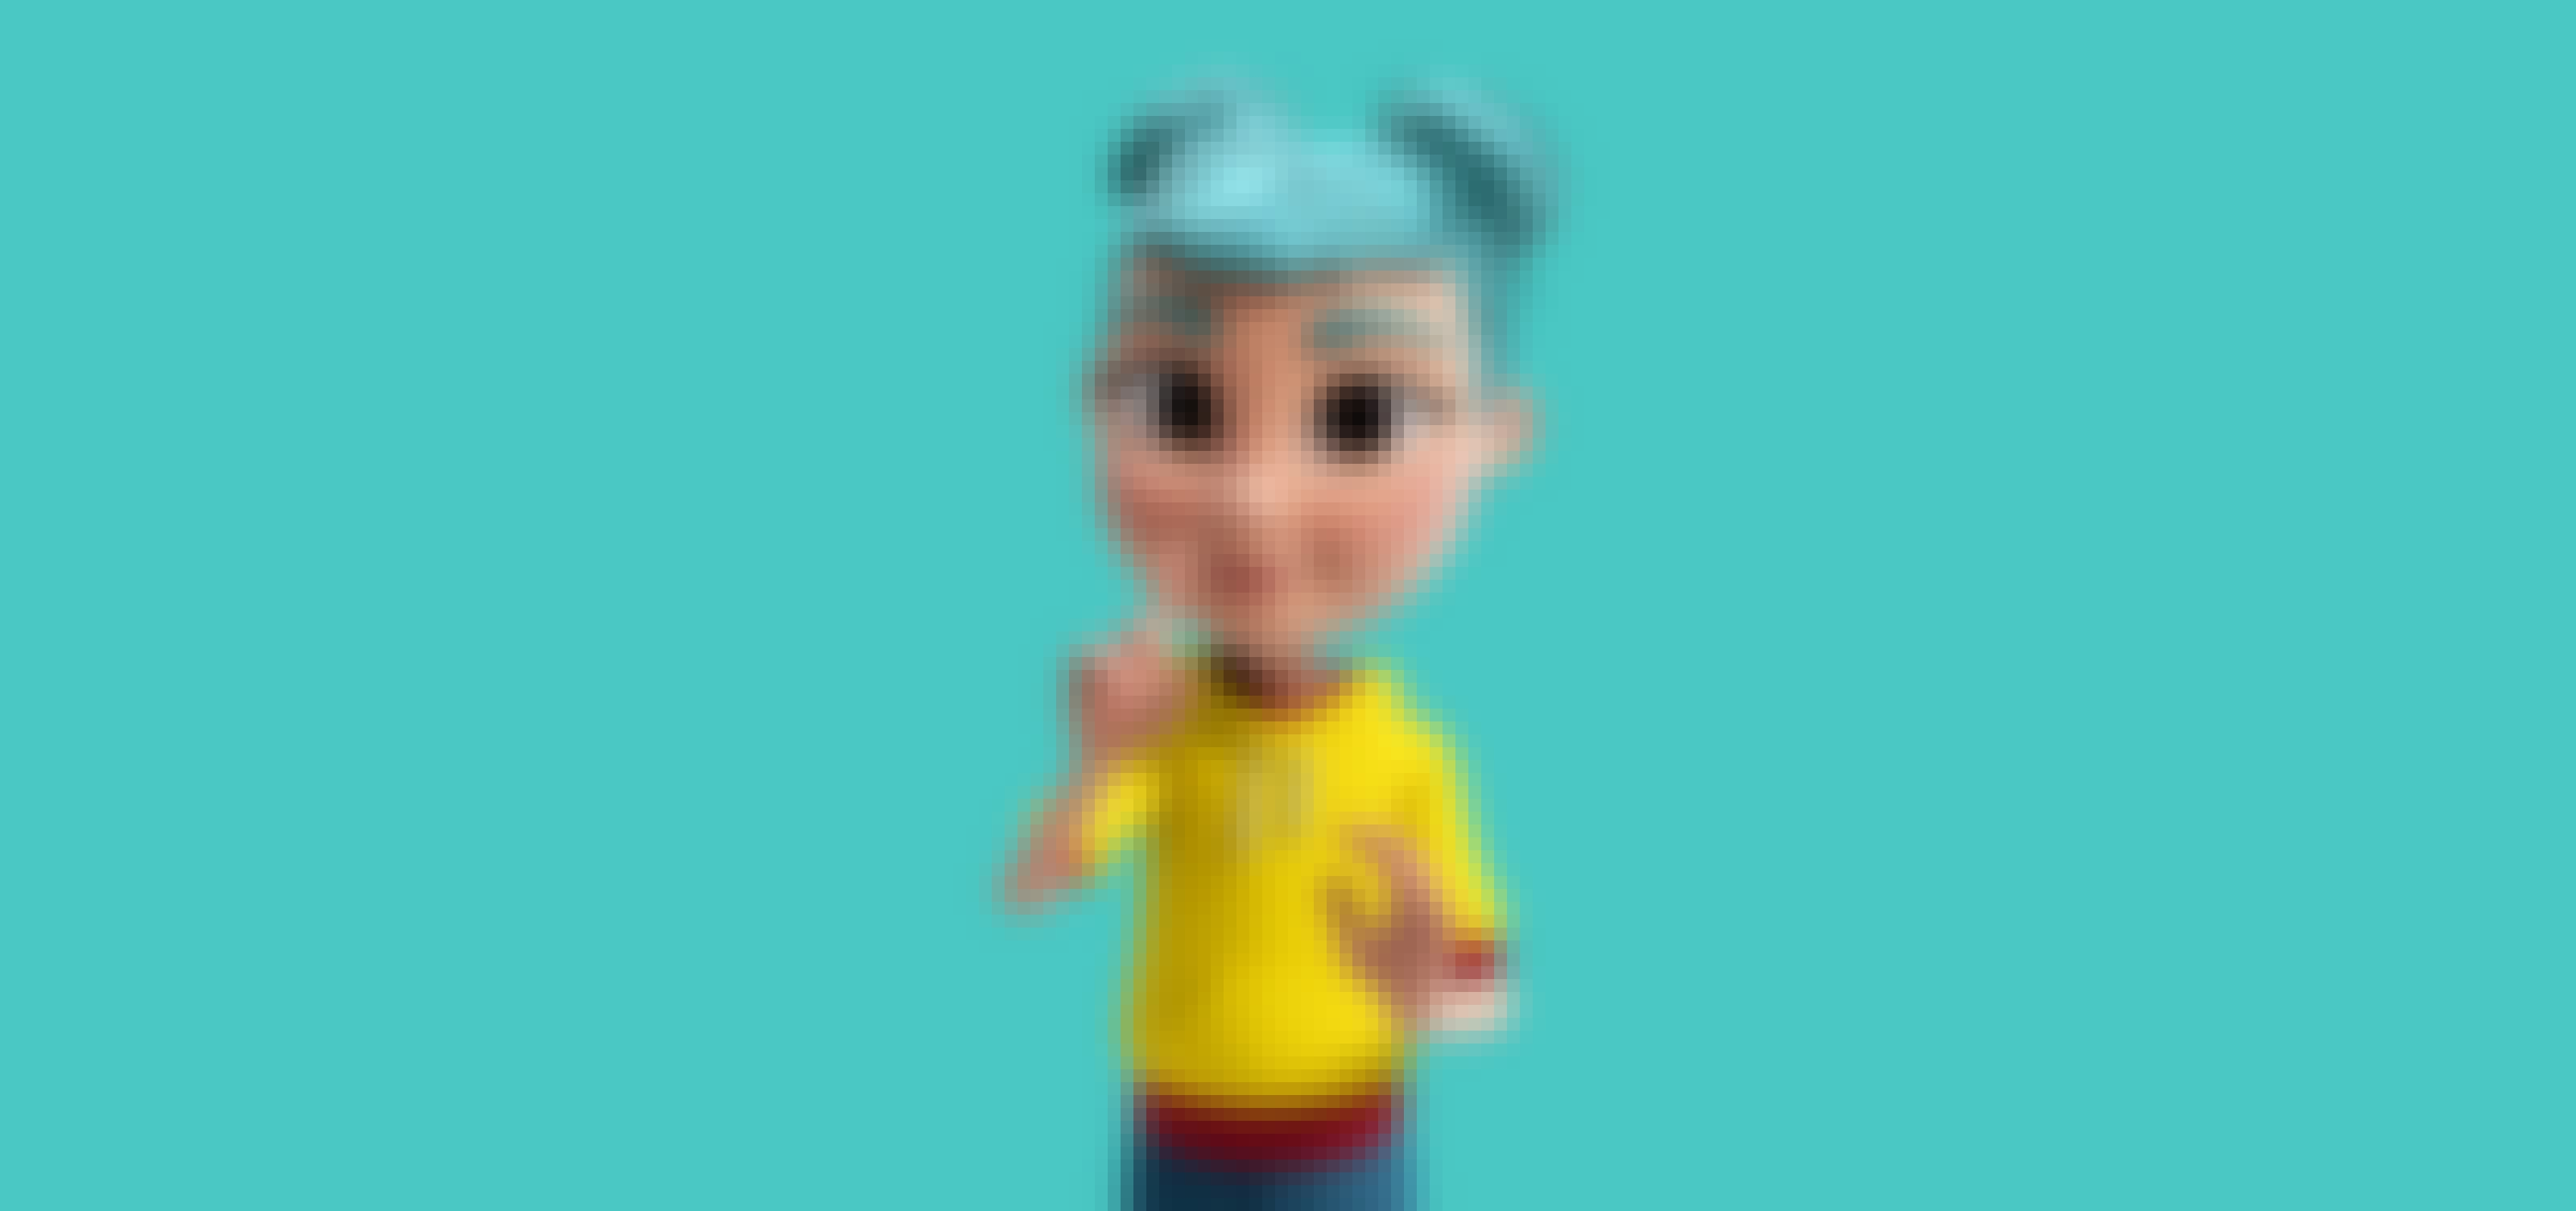 3D character from Storysign, on a blue background